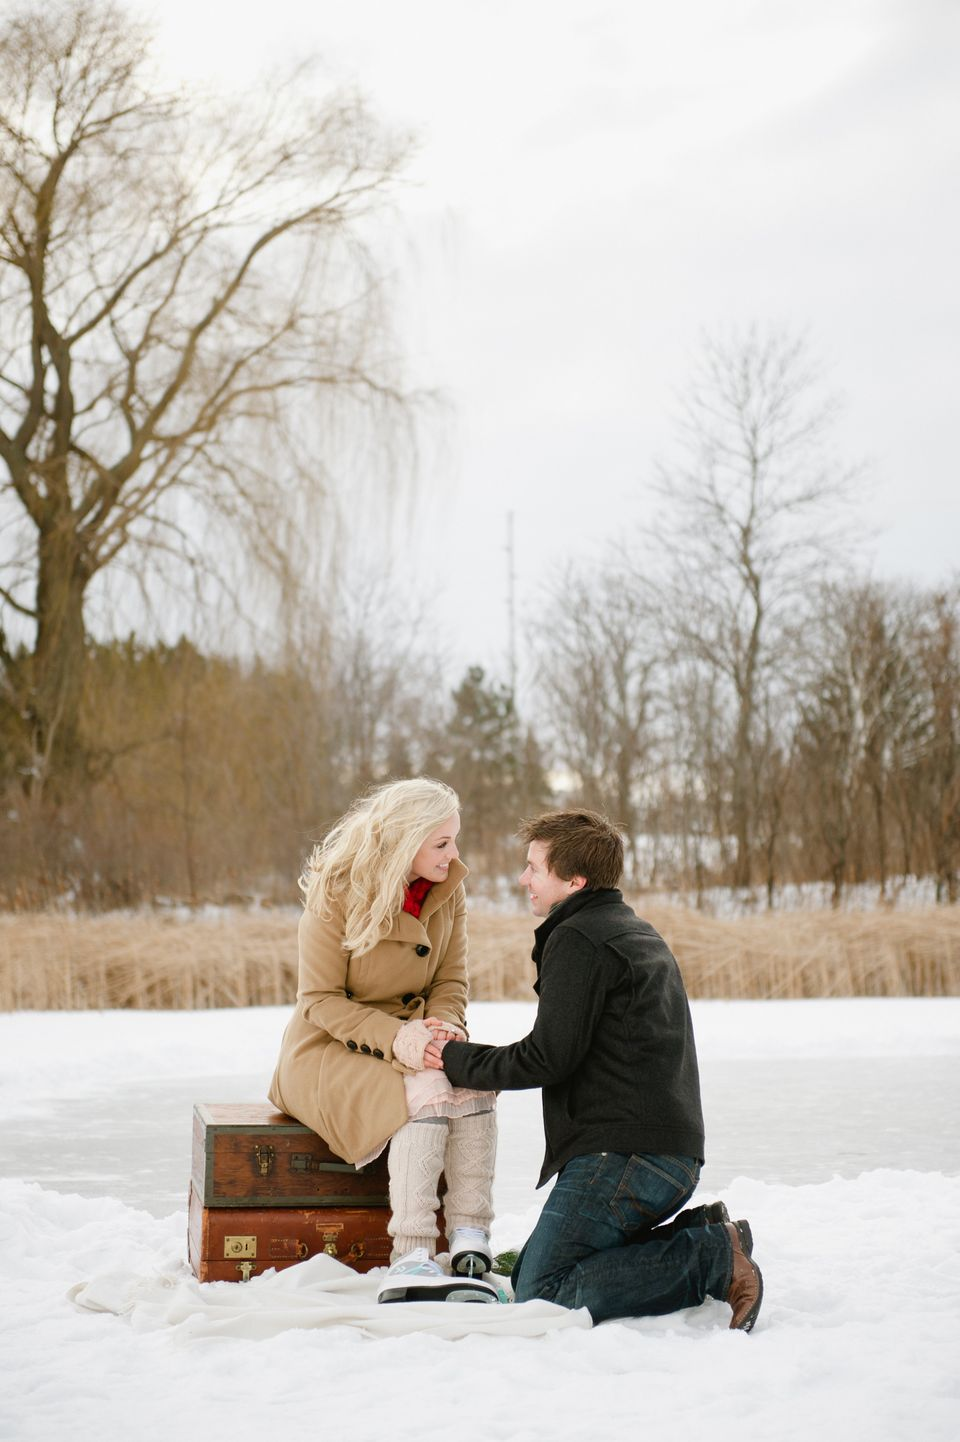 The number-one tip cited by many of the proposal planners we spoke to is to make sure the proposal is personalized. Proposal